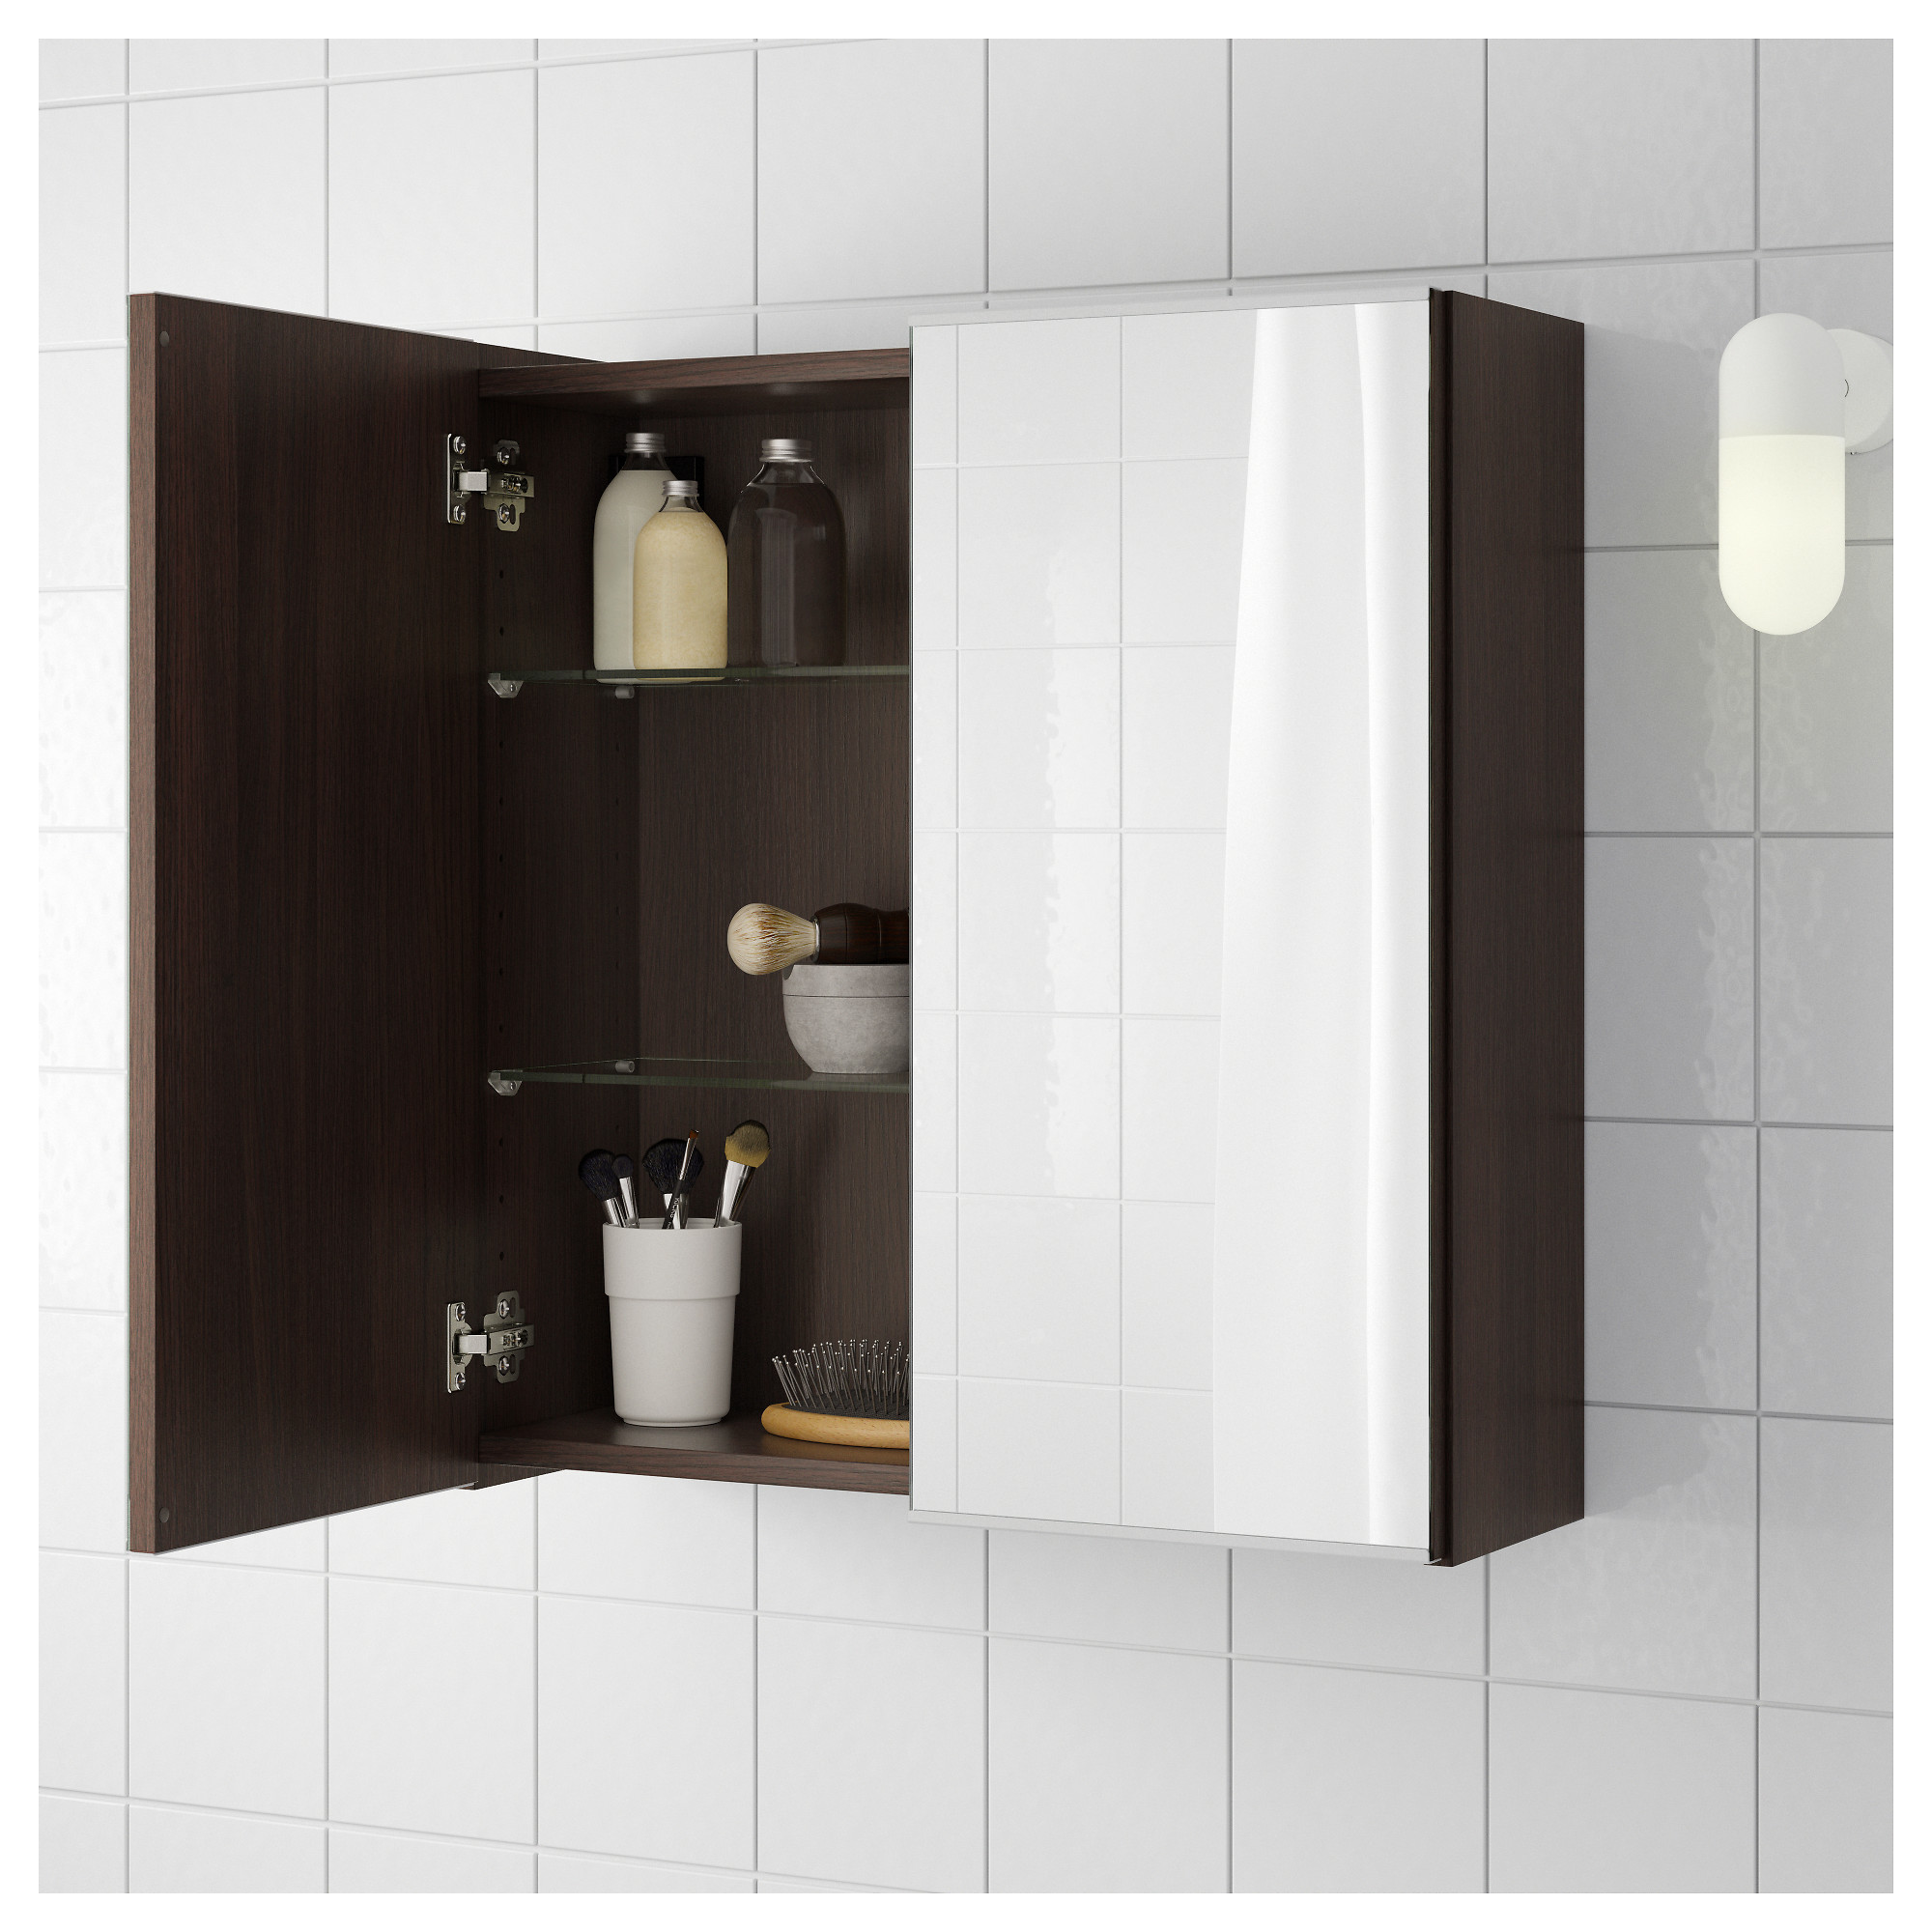 size wall cabinet ikea lillangen bathroom lights cabinets of with home medicine designs mirror full white